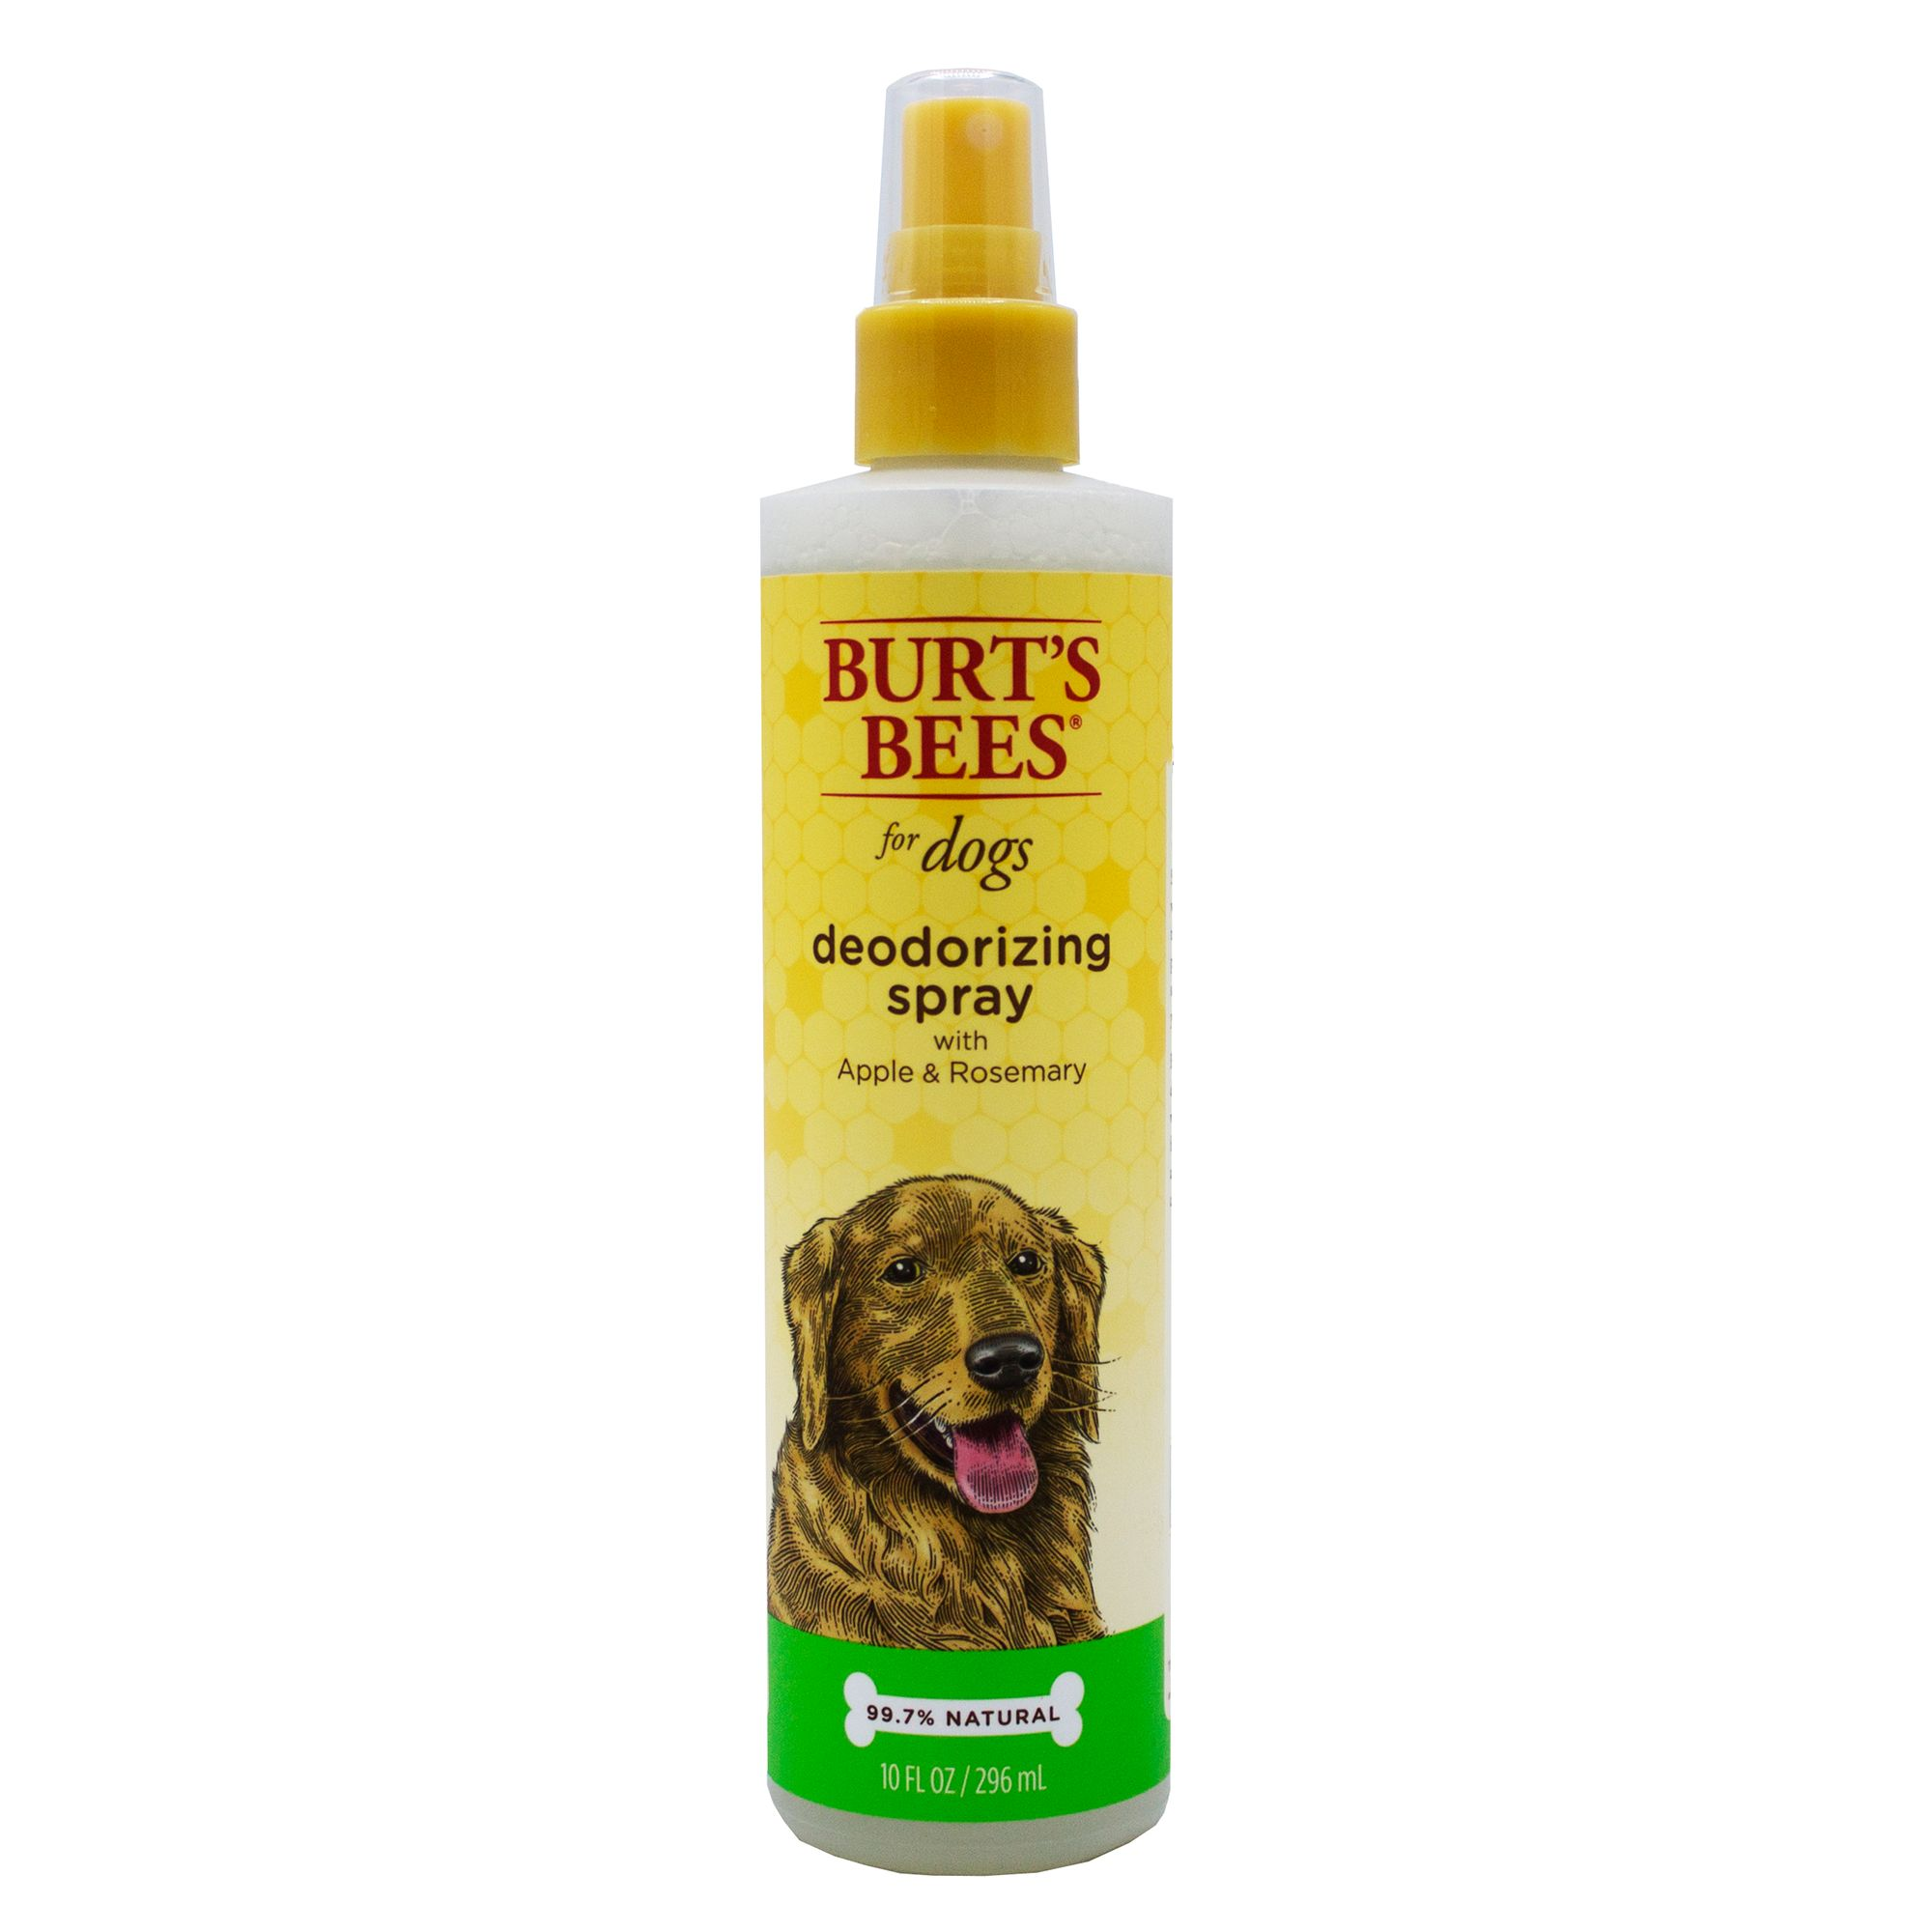 Burts Bees Deodorizing Dog Spray Size 10 Fl Oz